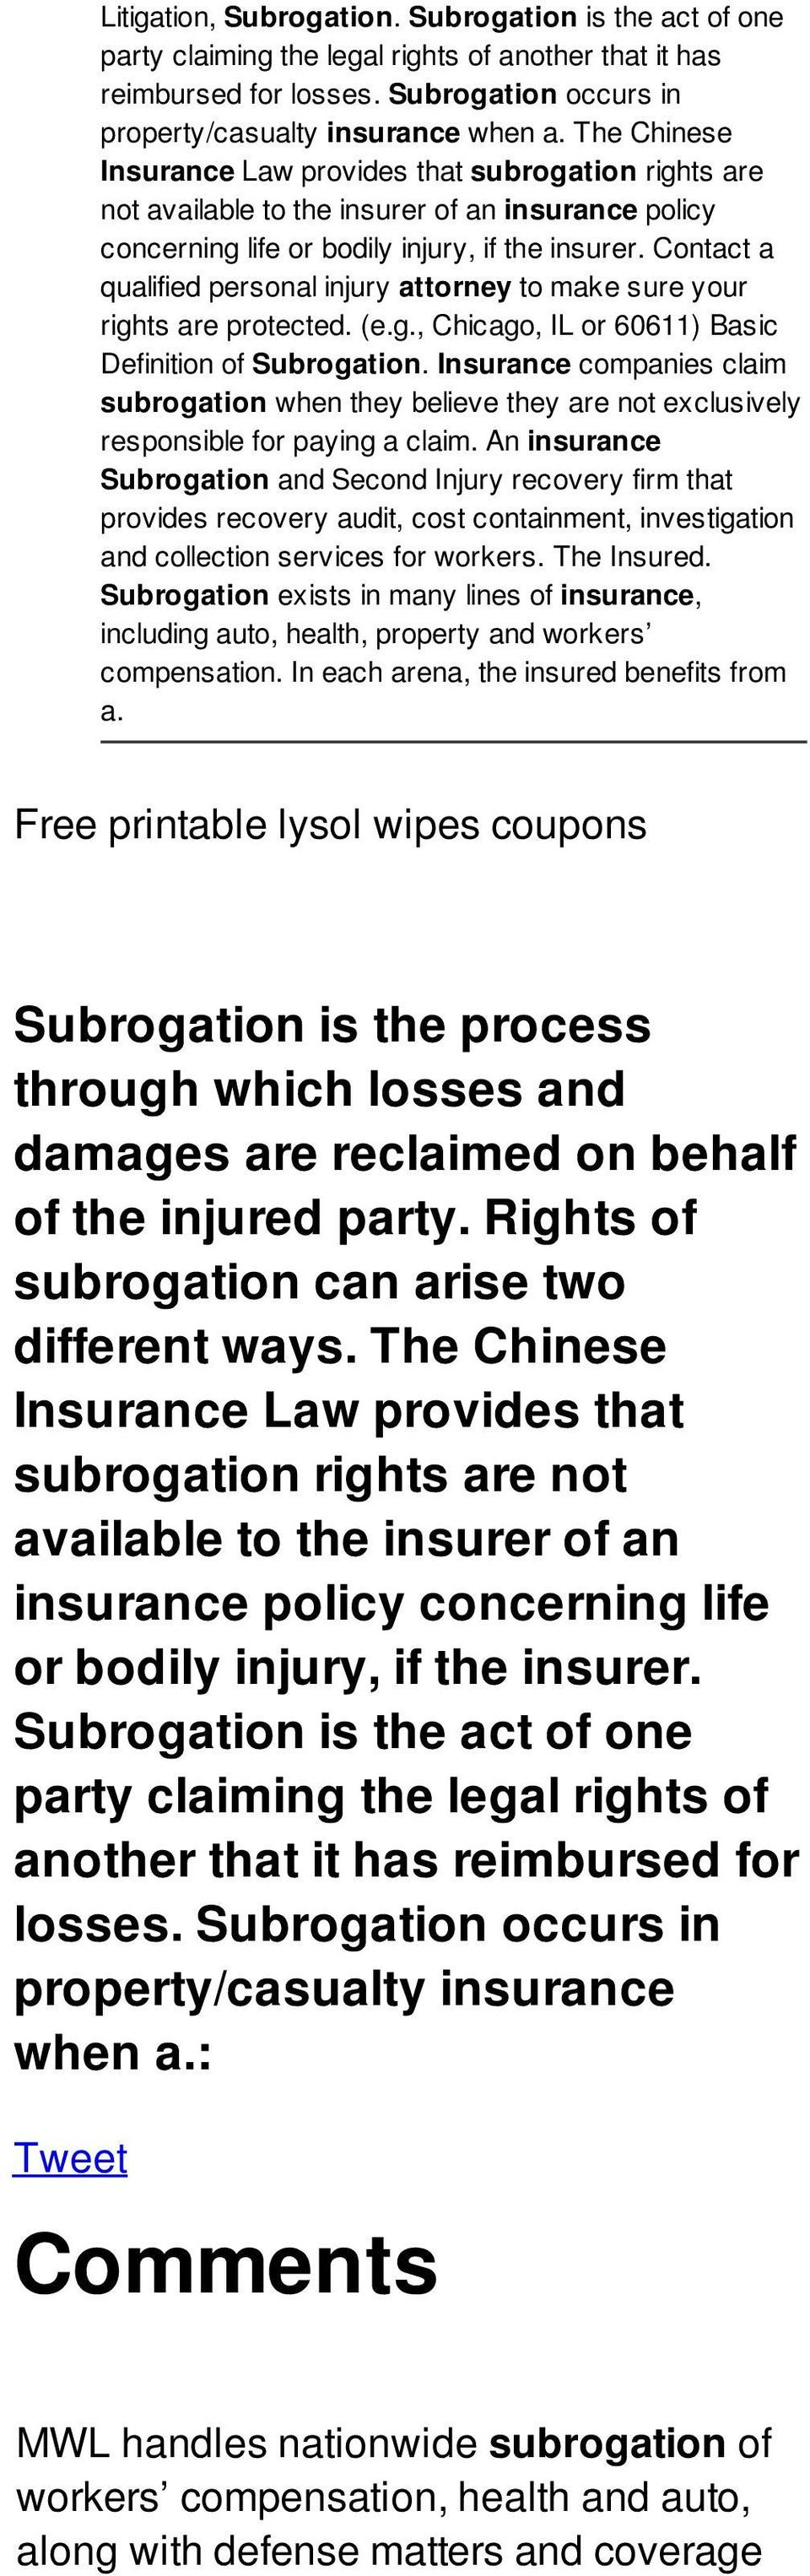 Contact a qualified personal injury attorney to make sure your rights are protected. (e.g., Chicago, IL or 60611) Basic Definition of Subrogation.